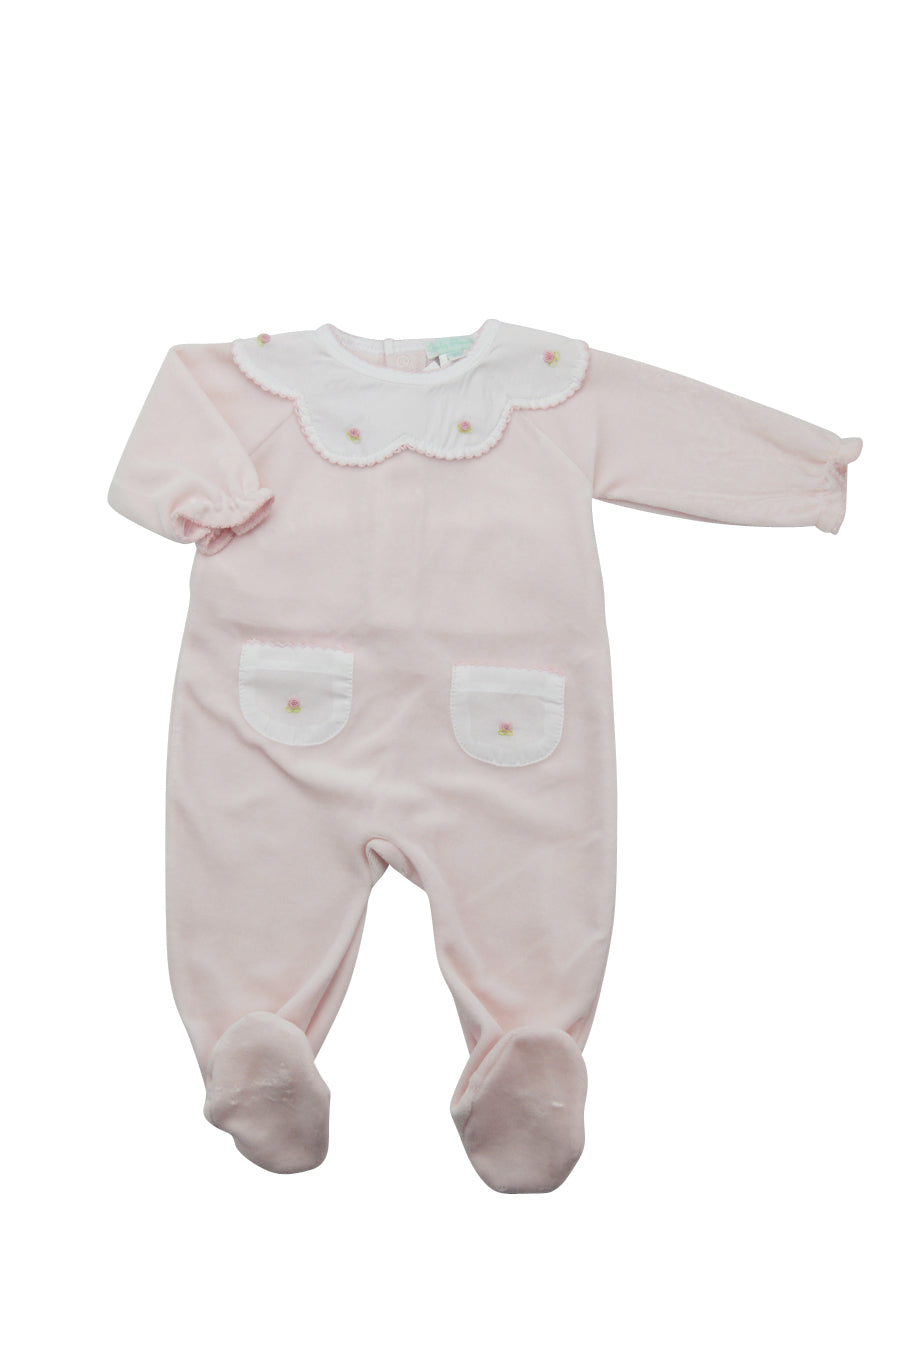 Pink Footie with Pockets - Little Threads Inc. Children's Clothing